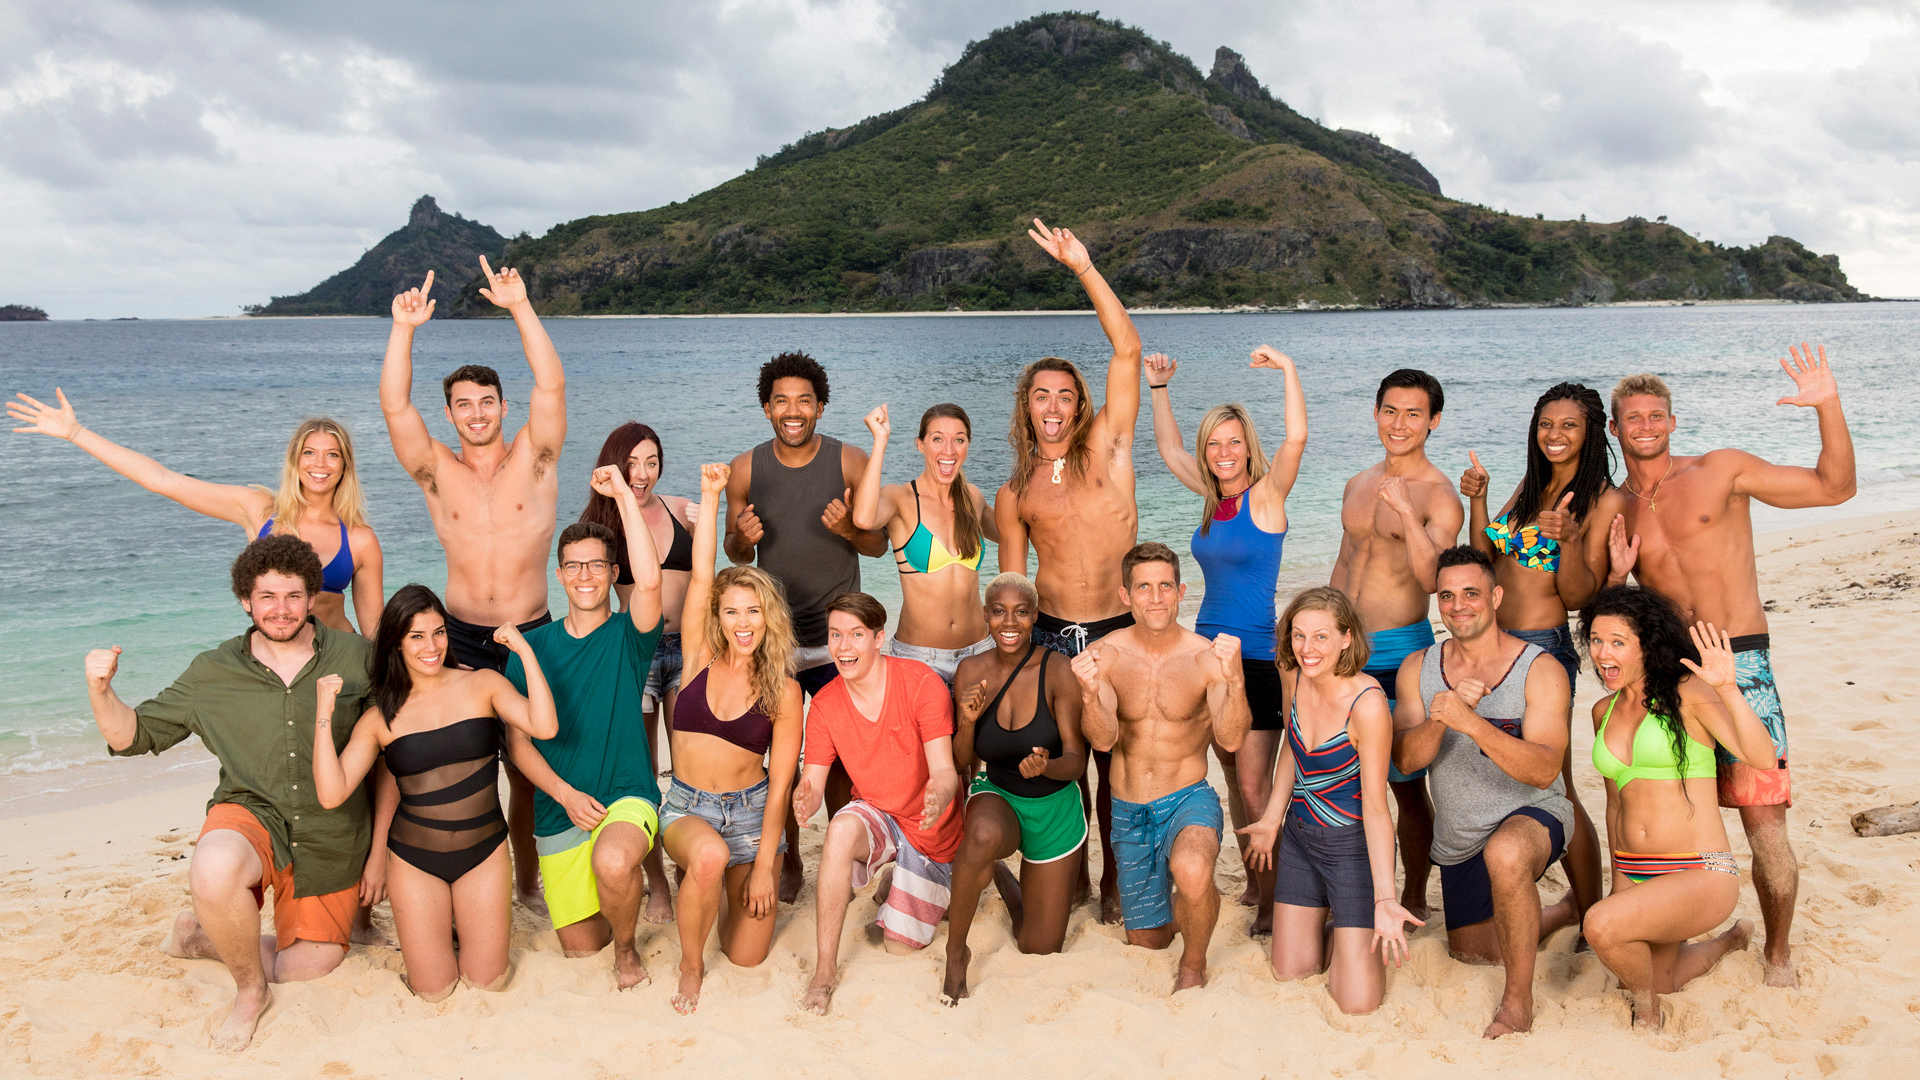 Meet the castaways of Survivor: Ghost Island